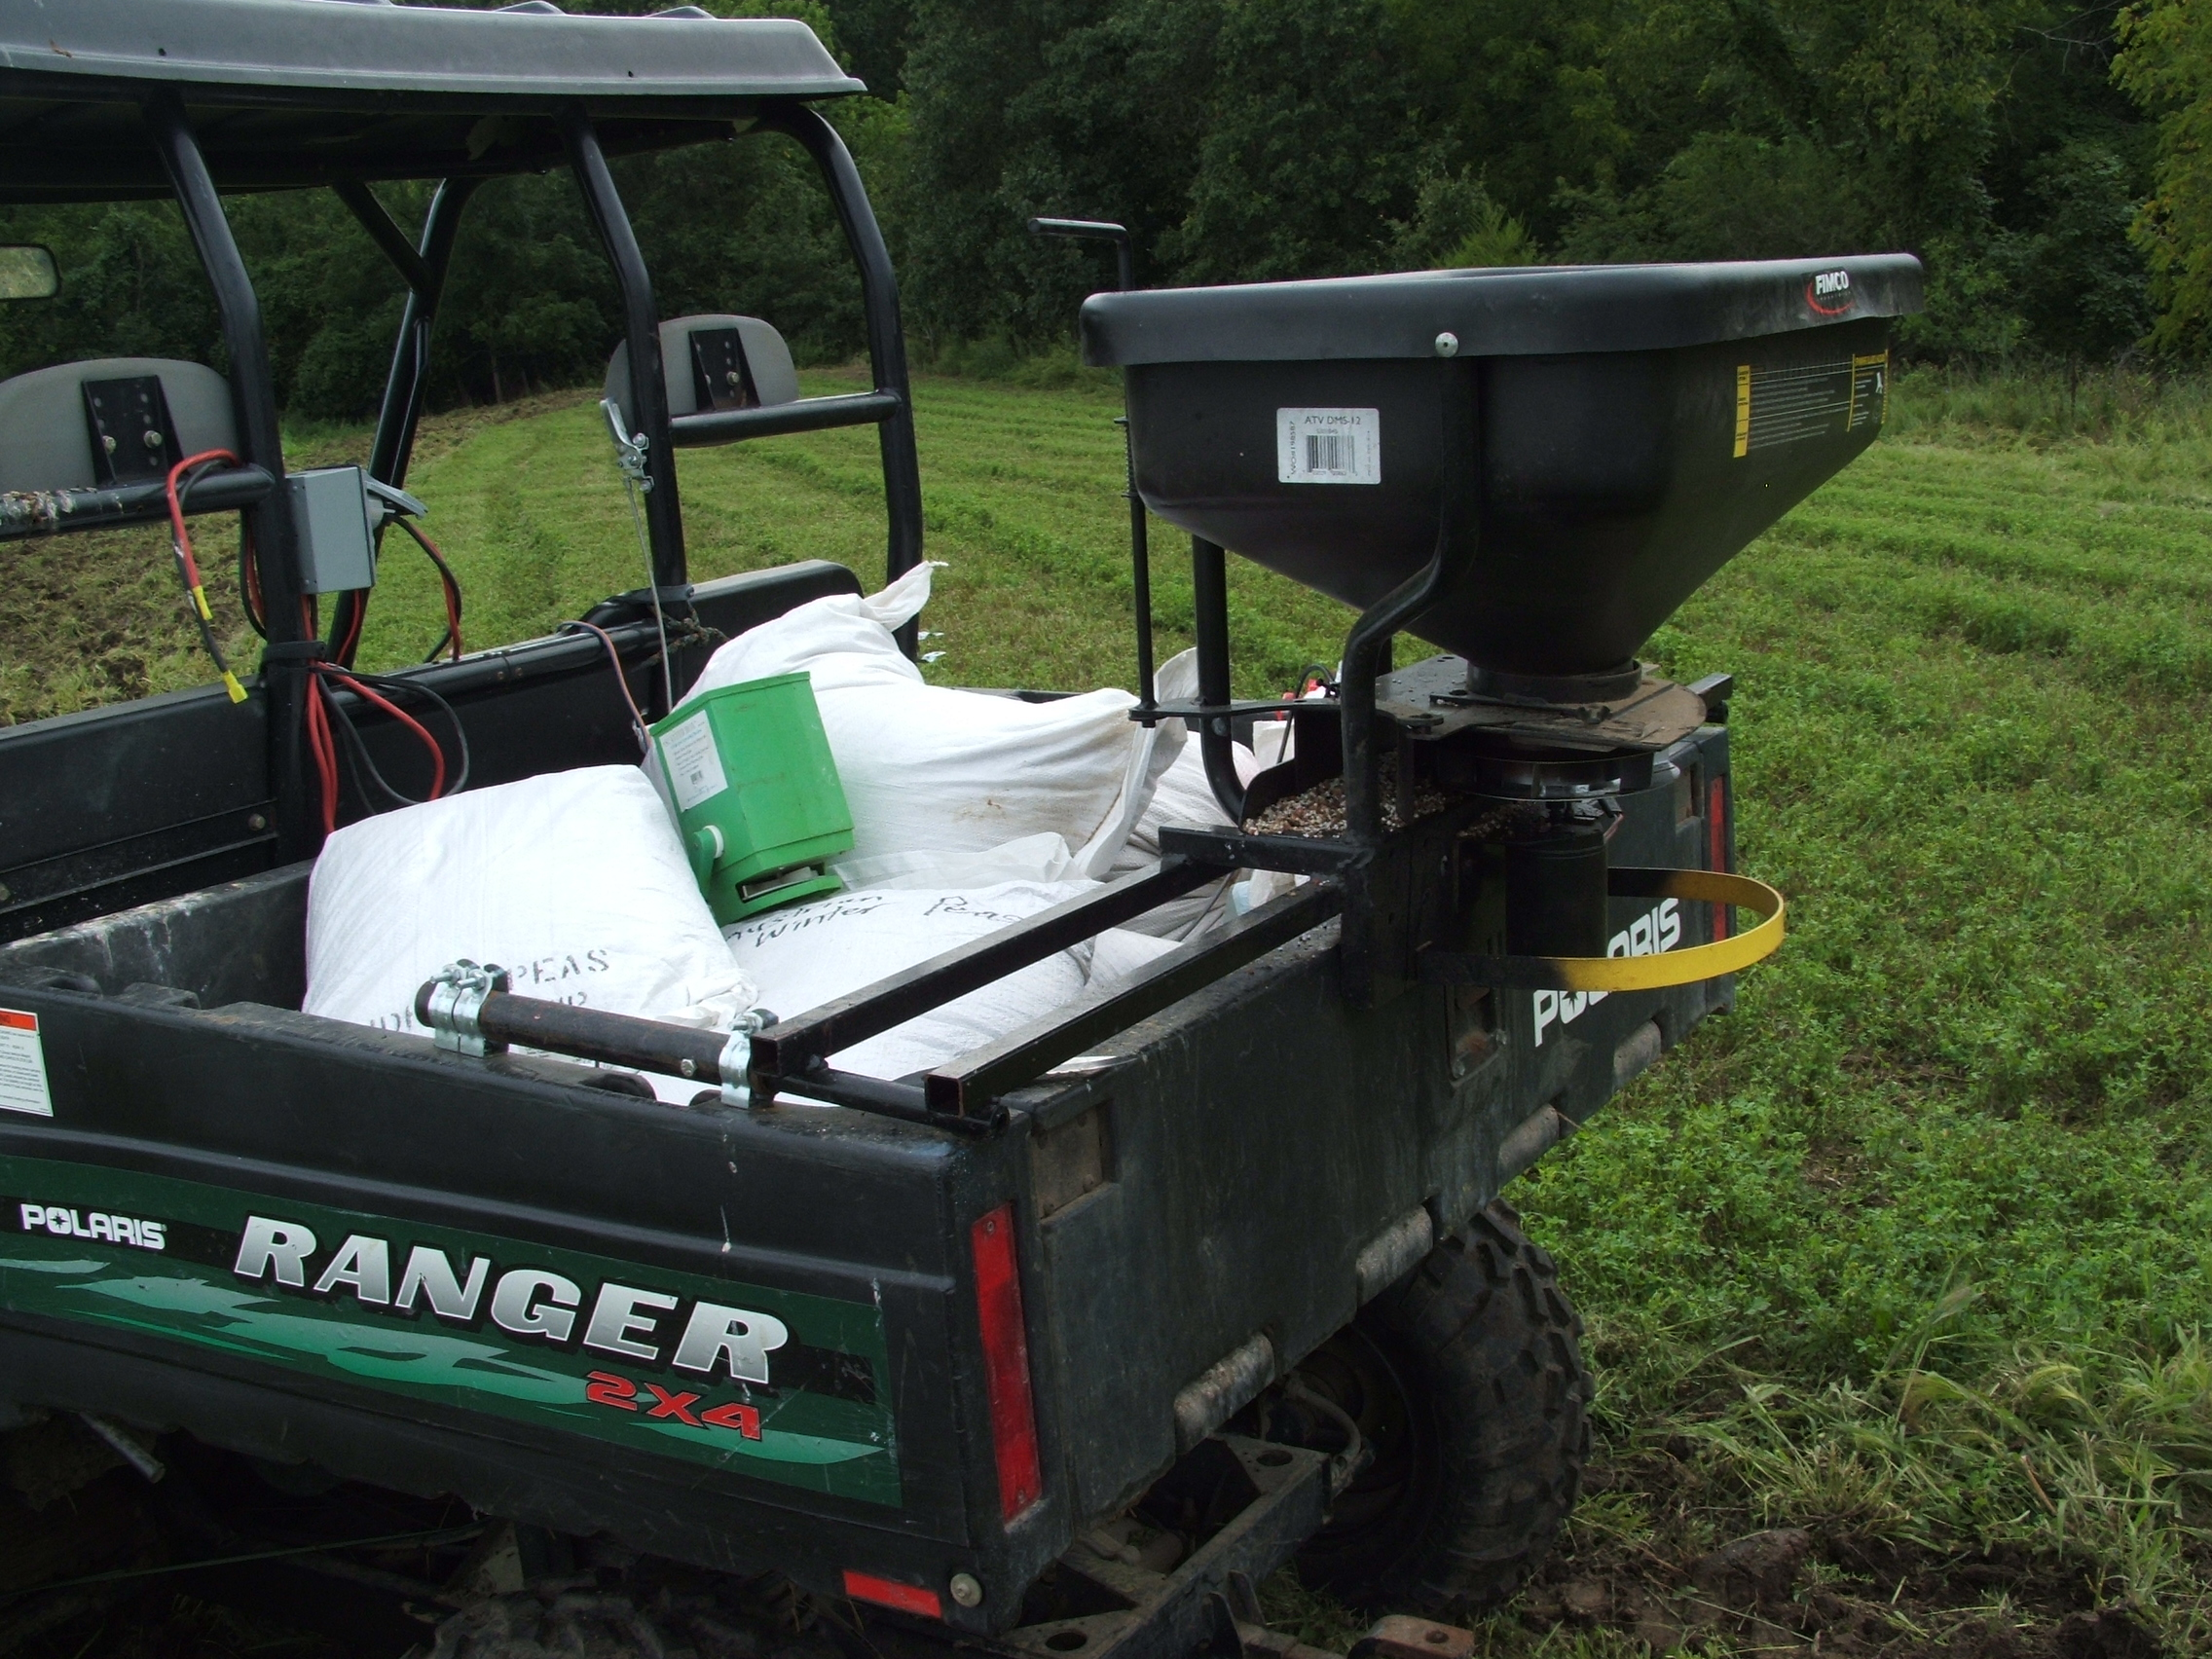 This is my 12volt Fimco seeder.  I altered it so that I can control the seed opening remotely from the front of the Ranger.  The speed is also controlled remotely from a variable speed drive.  This is a very good high end set up.